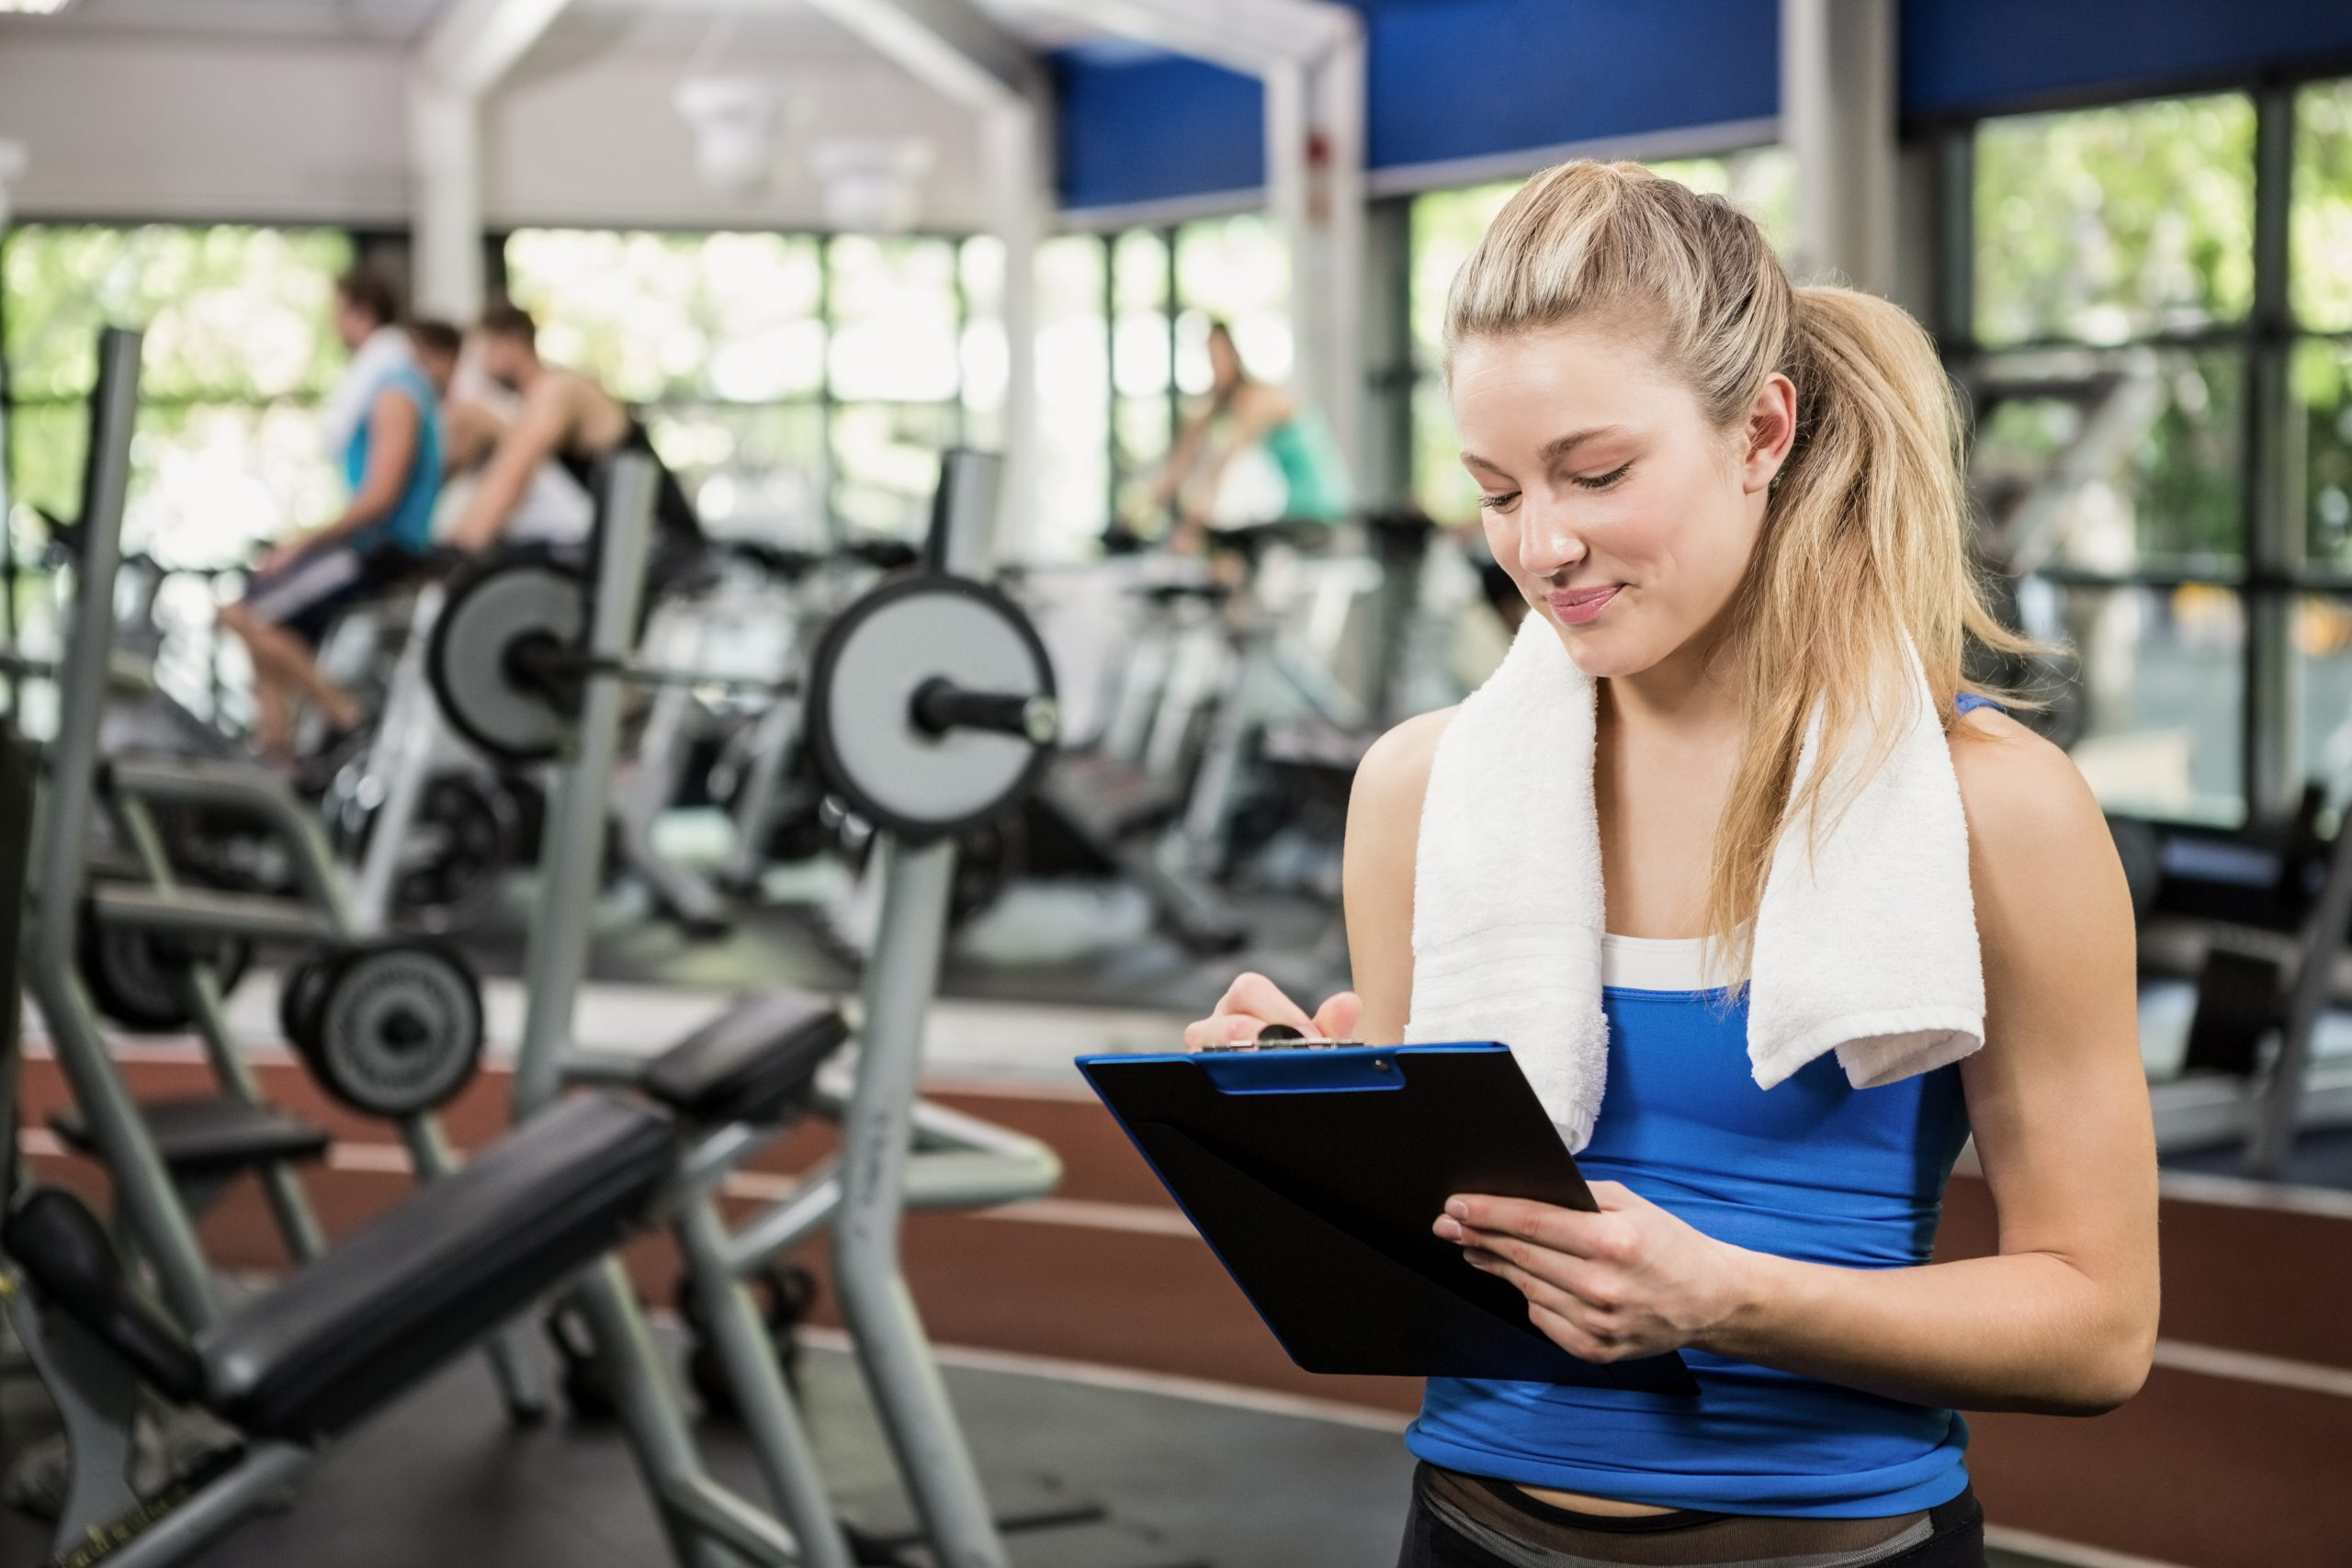 Woman writing on clipboard in weights room